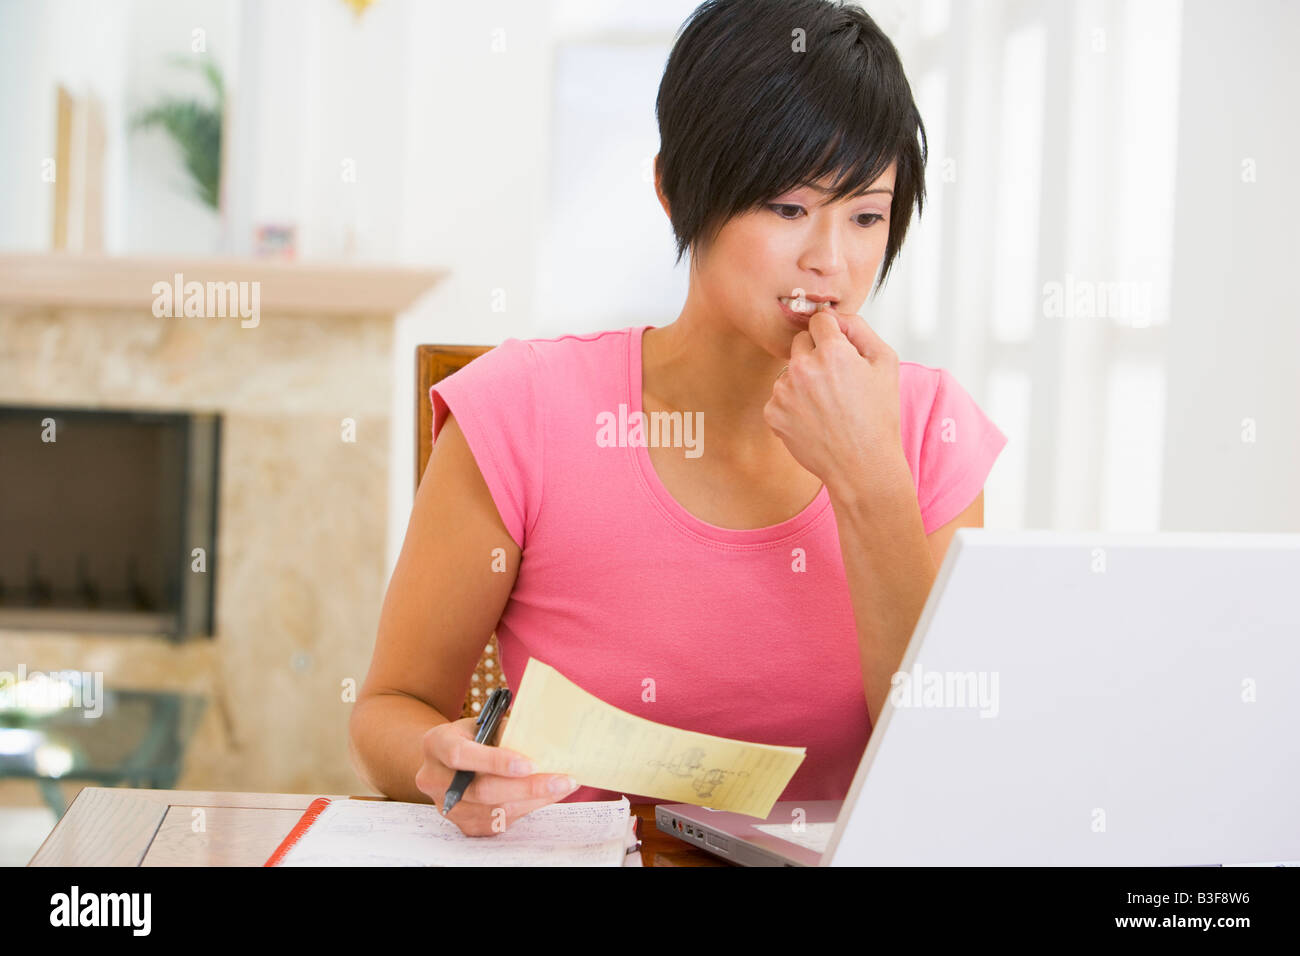 Woman in dining room with laptop thinking - Stock Image